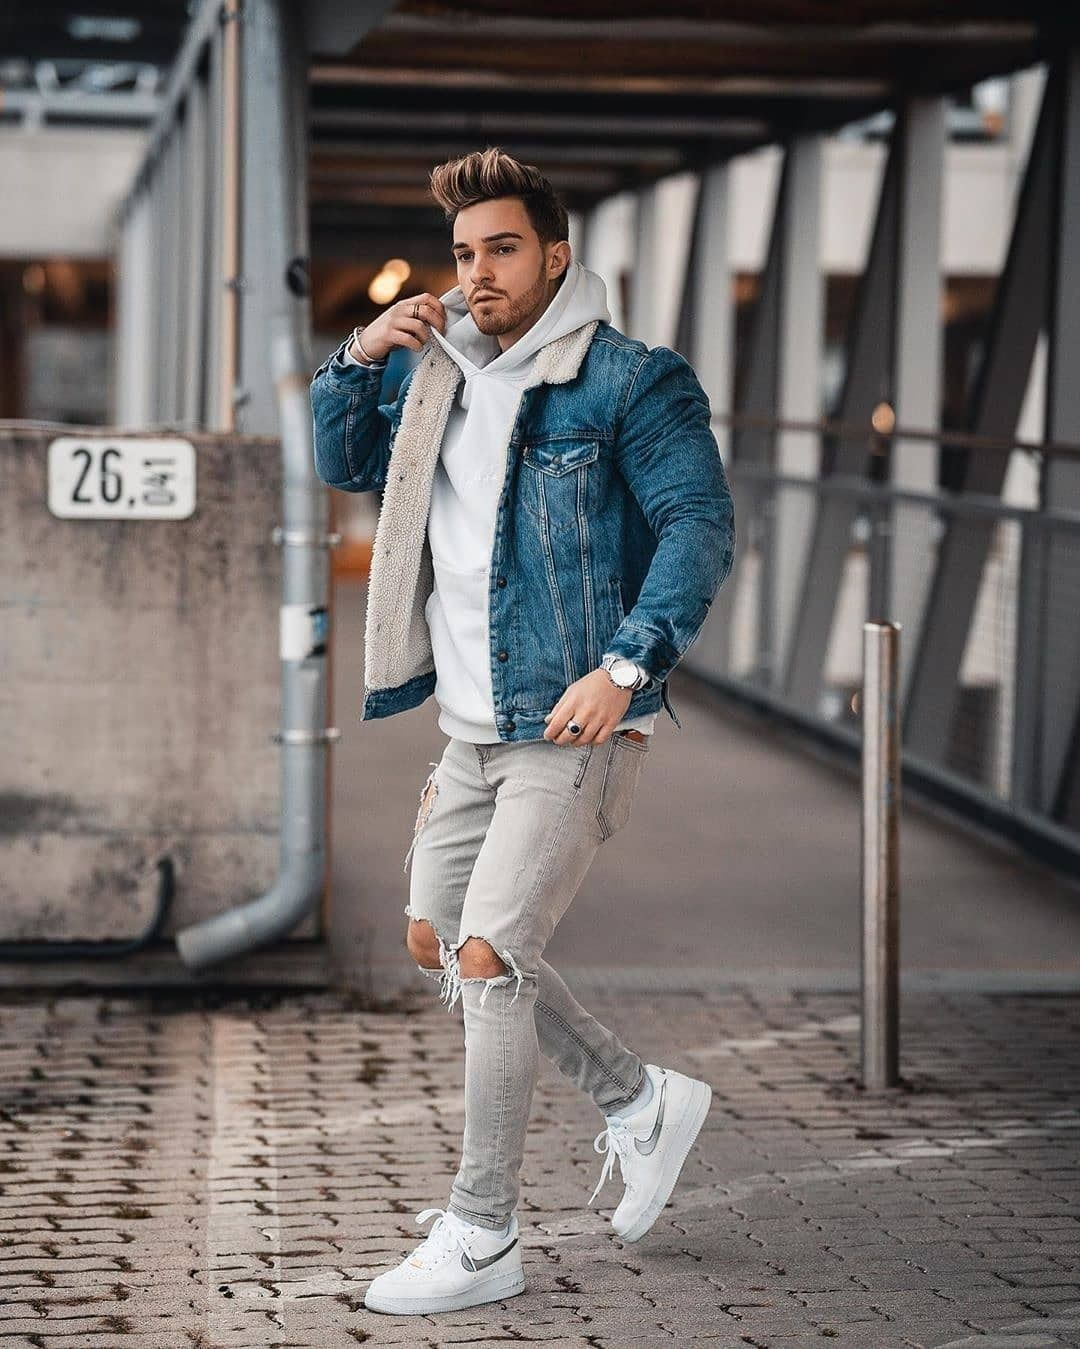 7 Denim Jacket Outfits You Should Try In 2020 Men Only Lifestyle Denim Jacket Outfit Winter Outfits Men Jean Jacket Outfits Men [ 1349 x 1080 Pixel ]